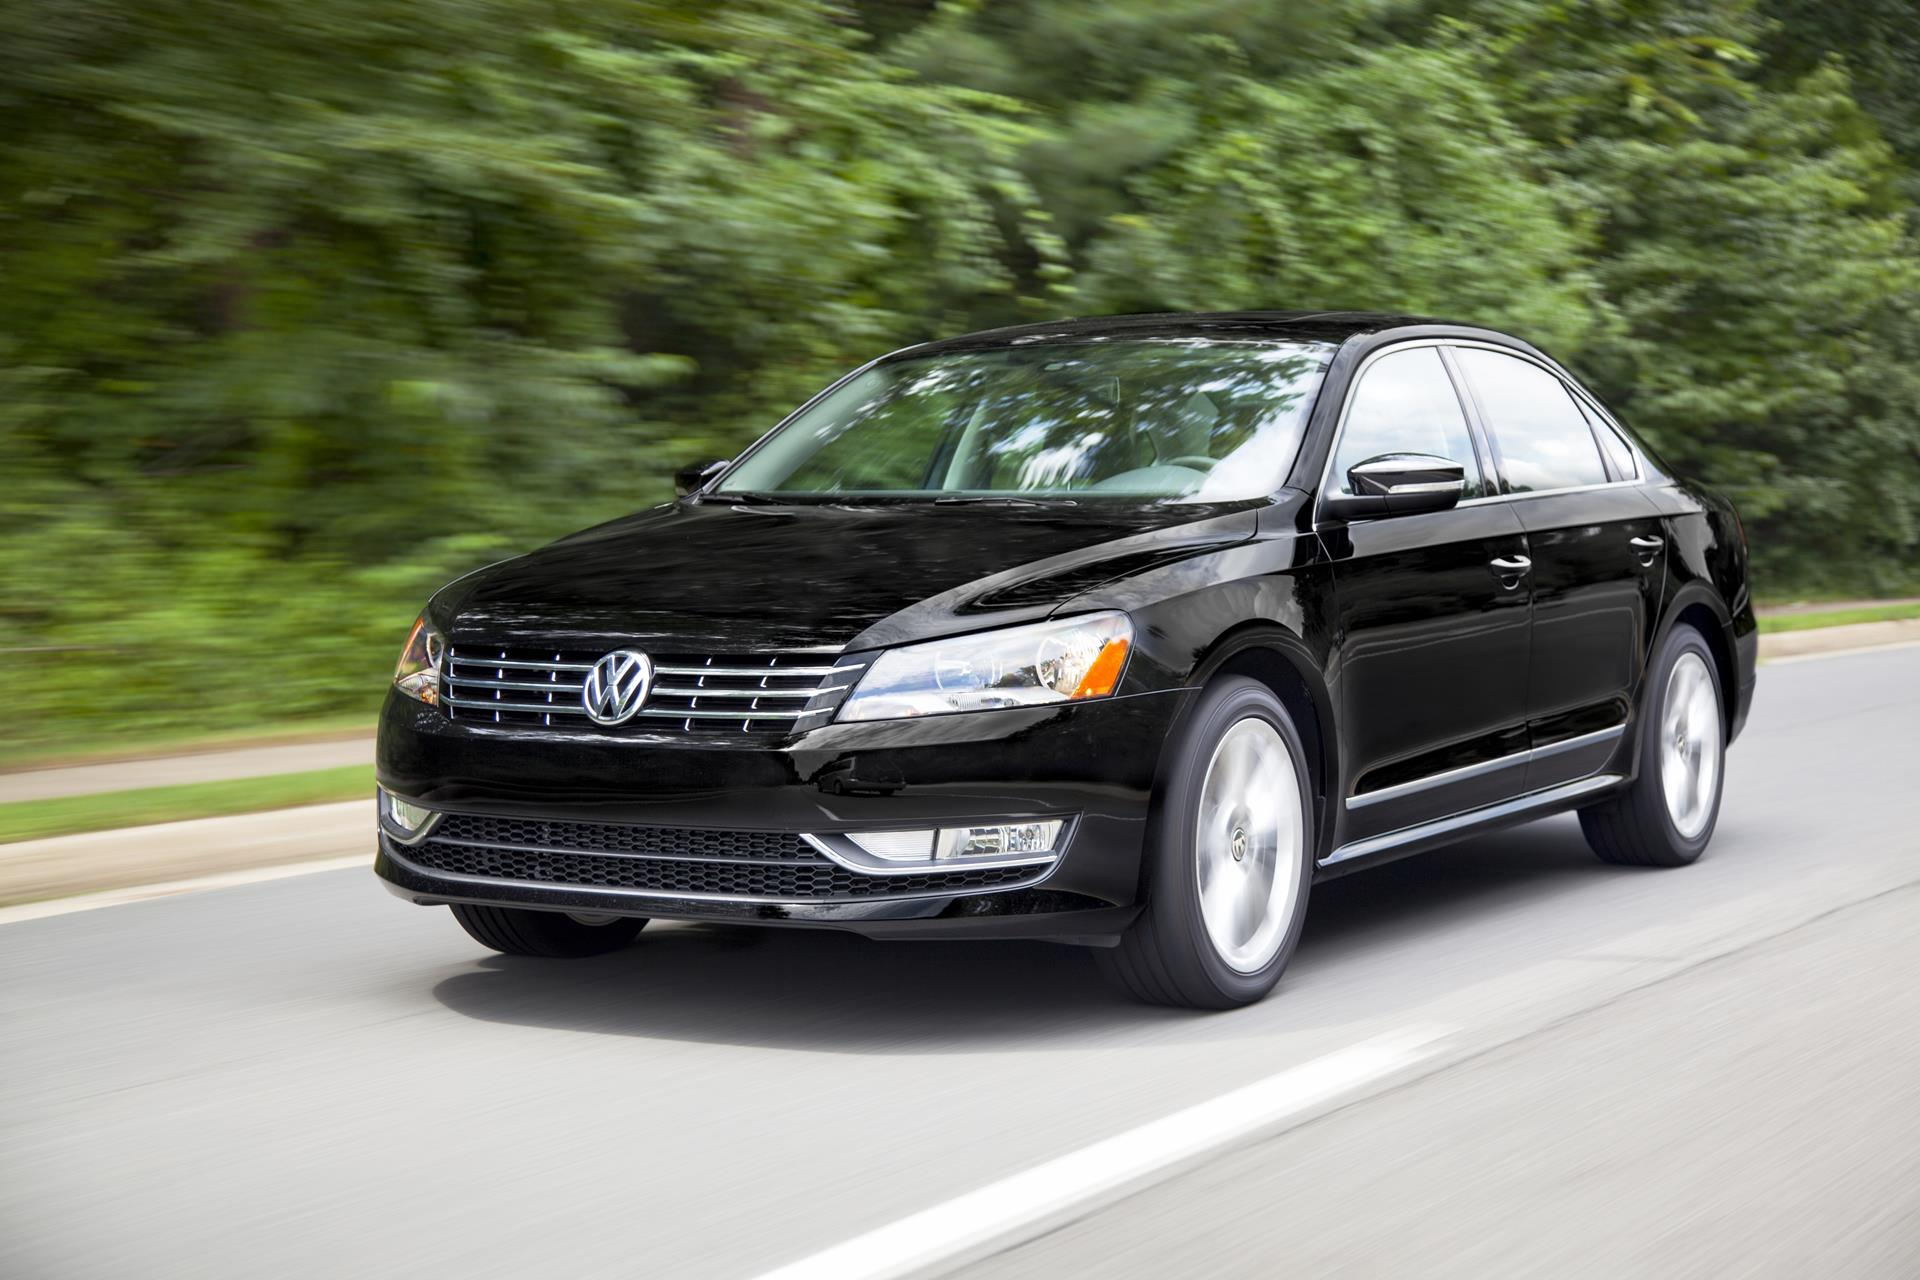 2015 volkswagen passat. Black Bedroom Furniture Sets. Home Design Ideas